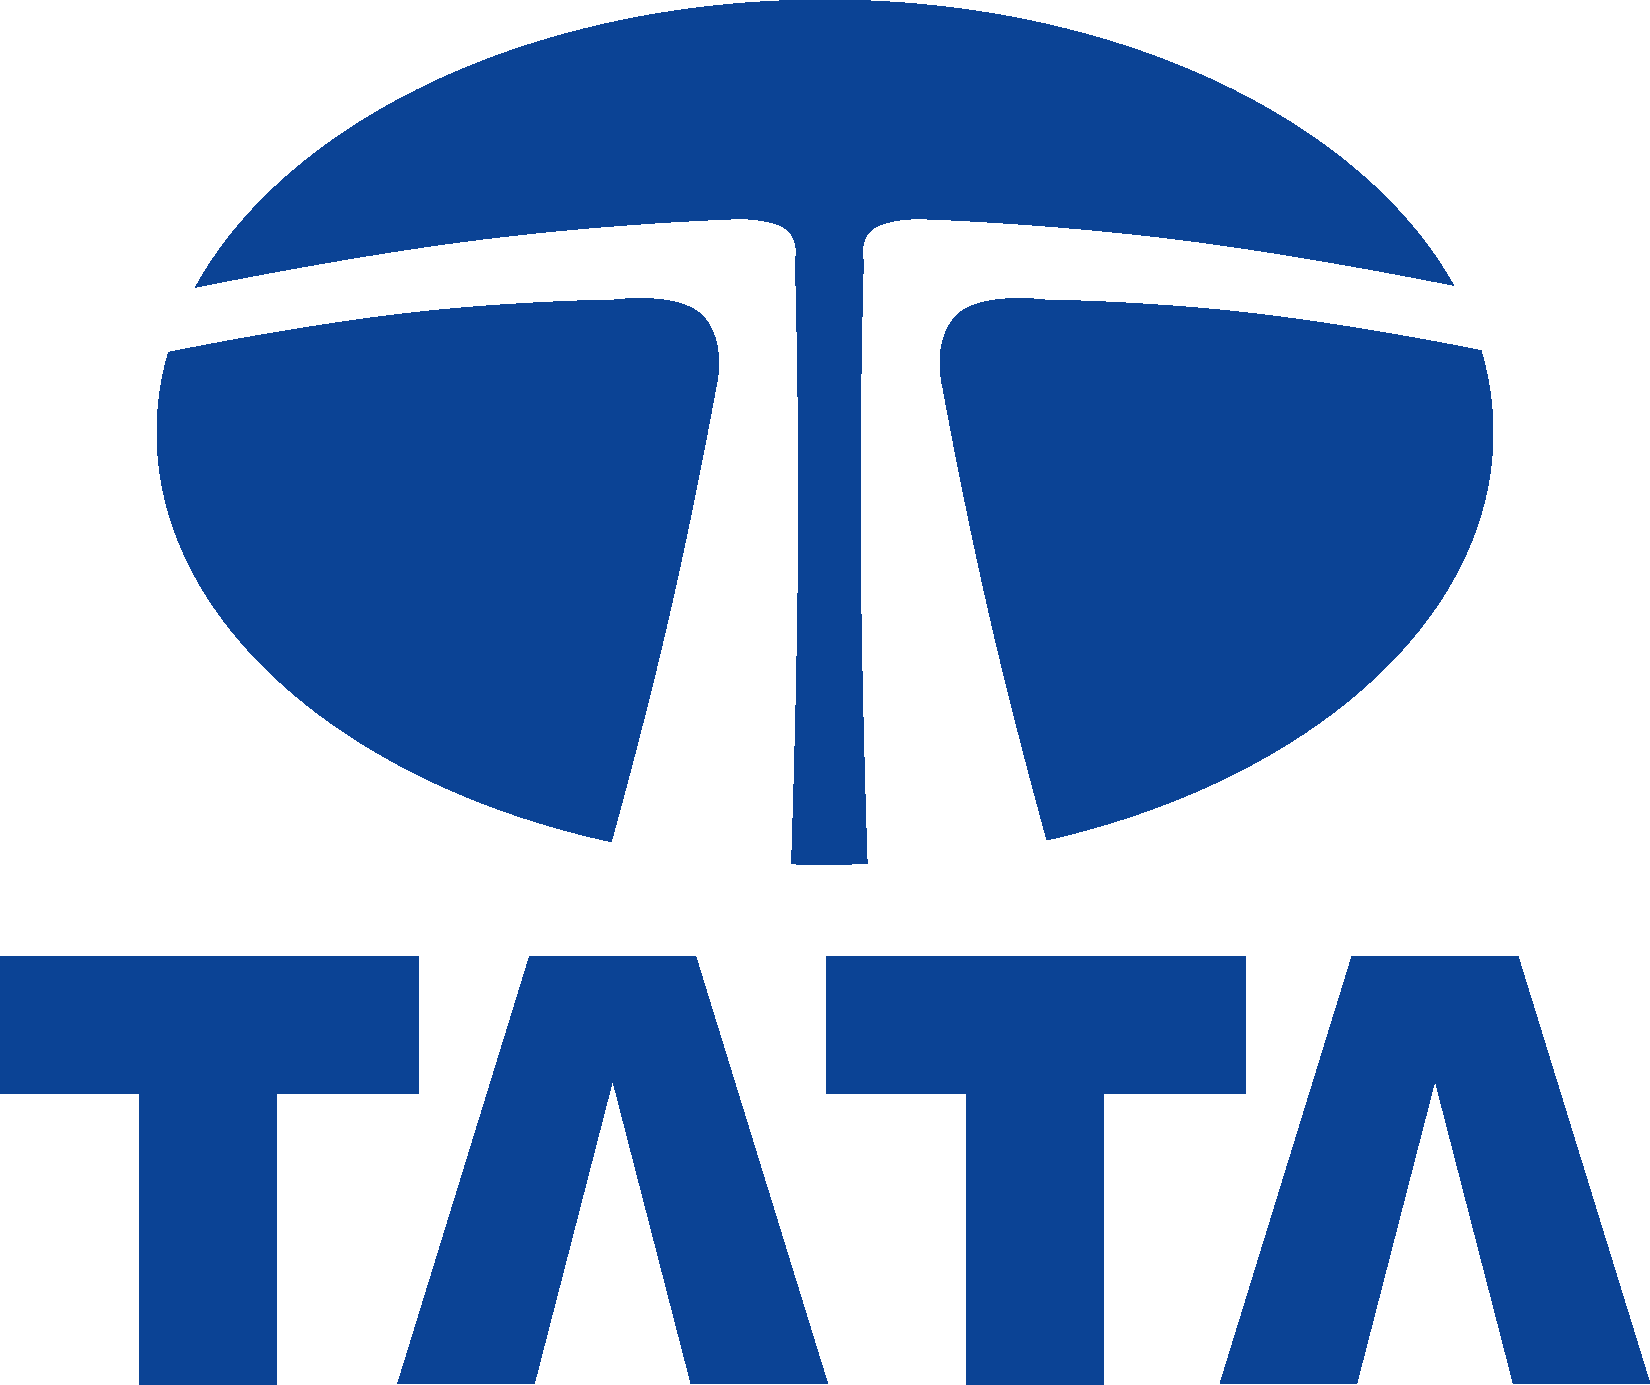 Tata logo eps pdf vector eps free download logo icons clipart the business operations of the tata group currently encompass seven business sectors communications and information technology engineering materials biocorpaavc Images